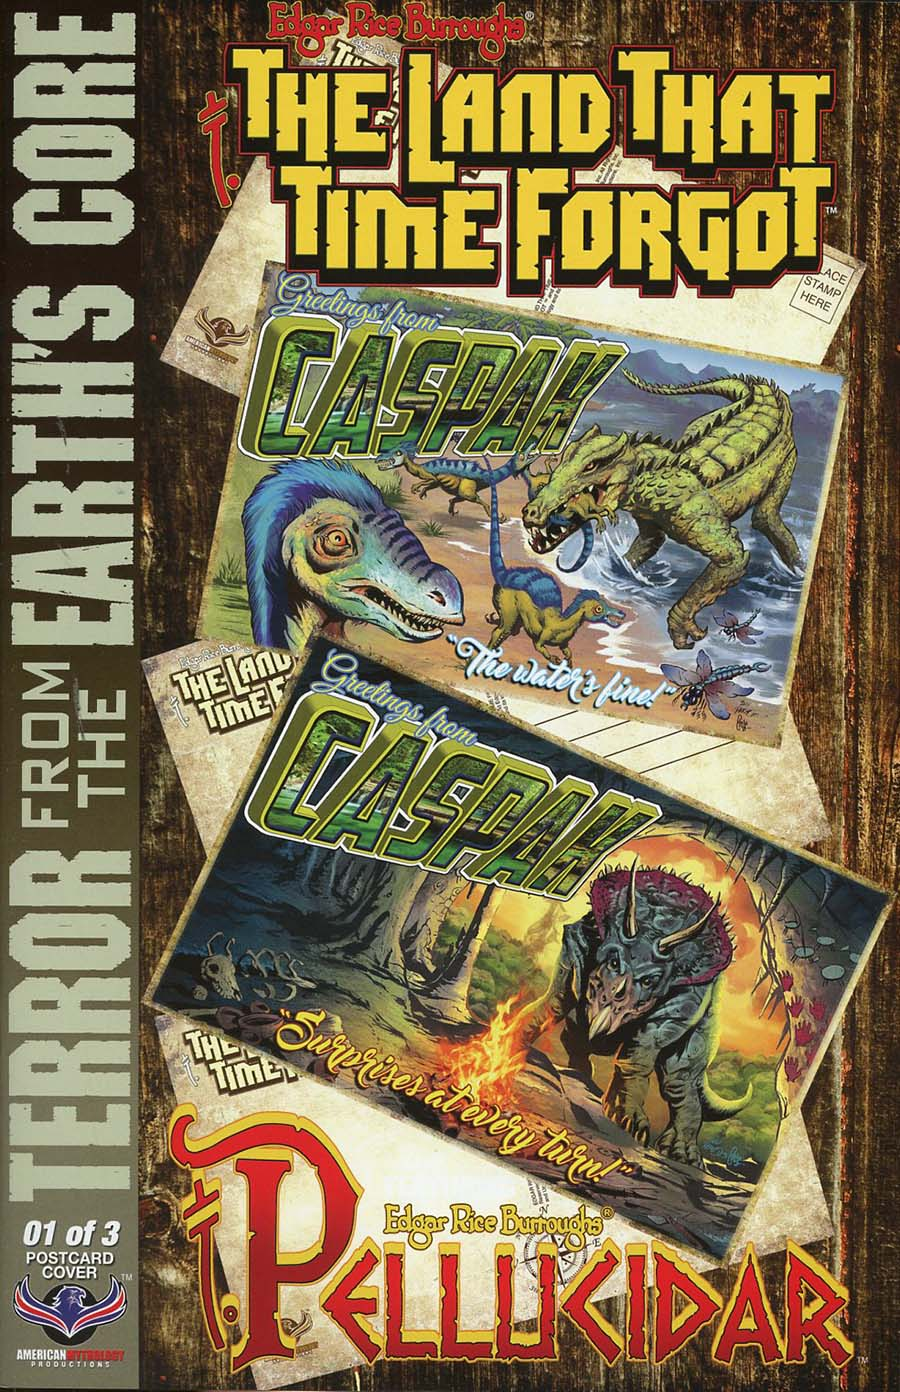 Edgar Rice Burroughs Land That Time Forgot Terror From The Earths Core #1 Cover C Incentive Dan Parsons Wish You Were Here Postcard Variant Cover